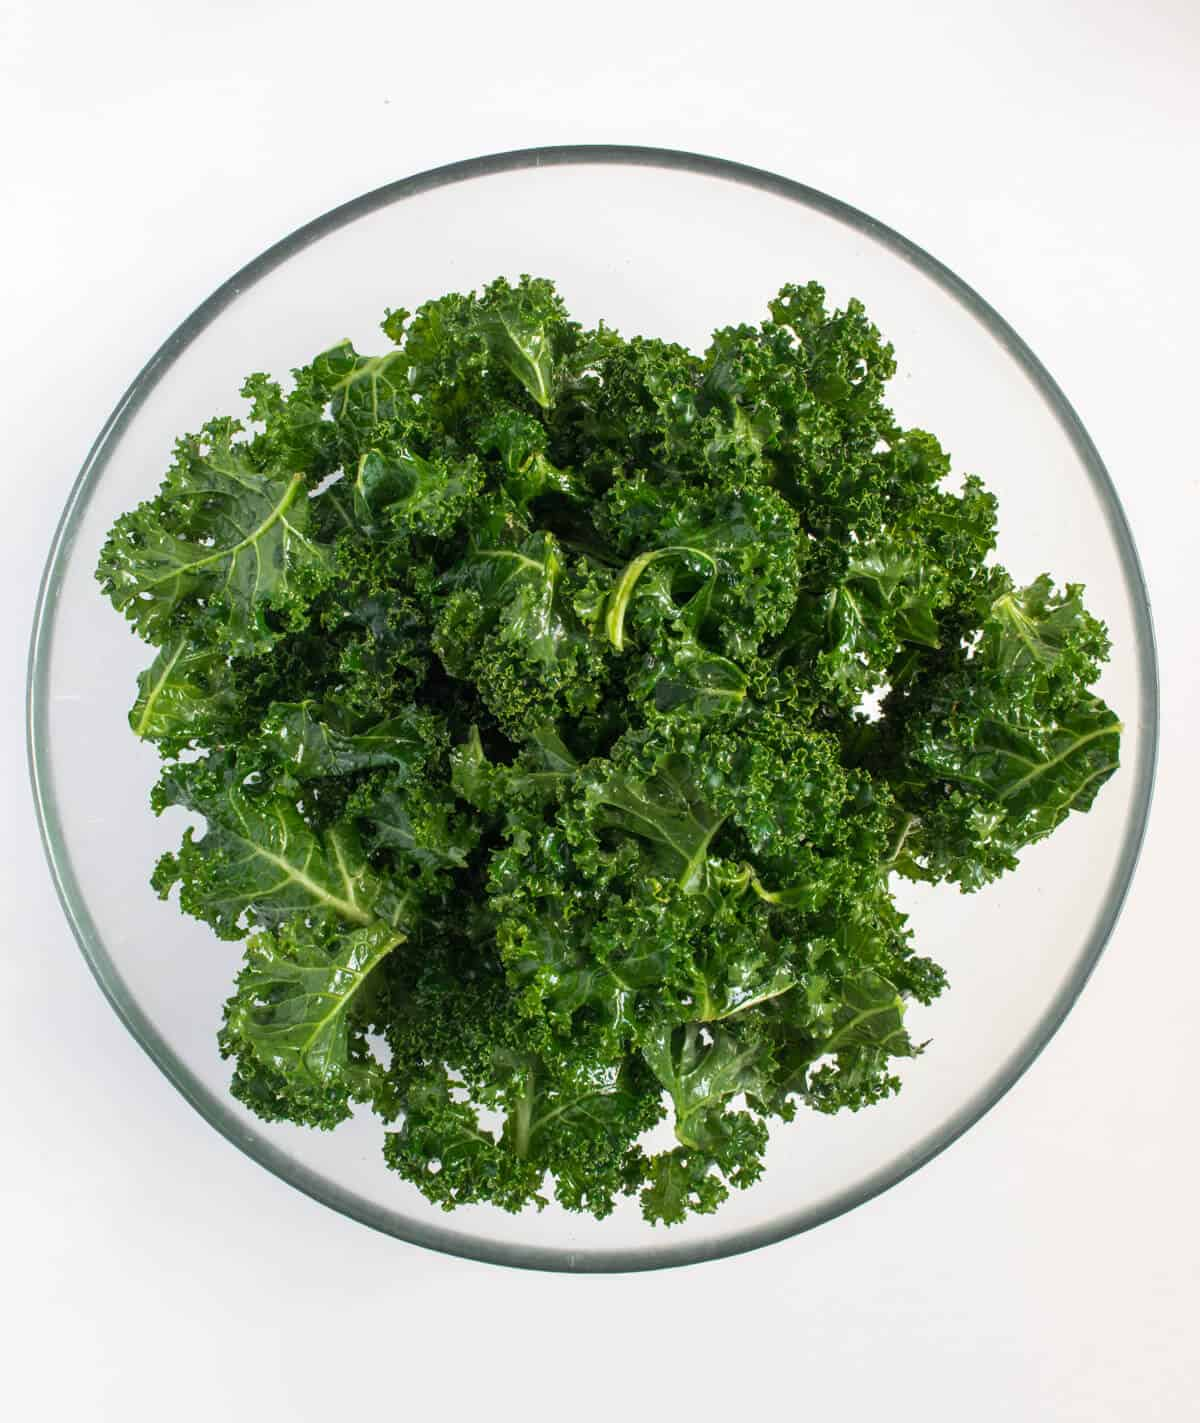 Kale in bowl mixed with ingredients